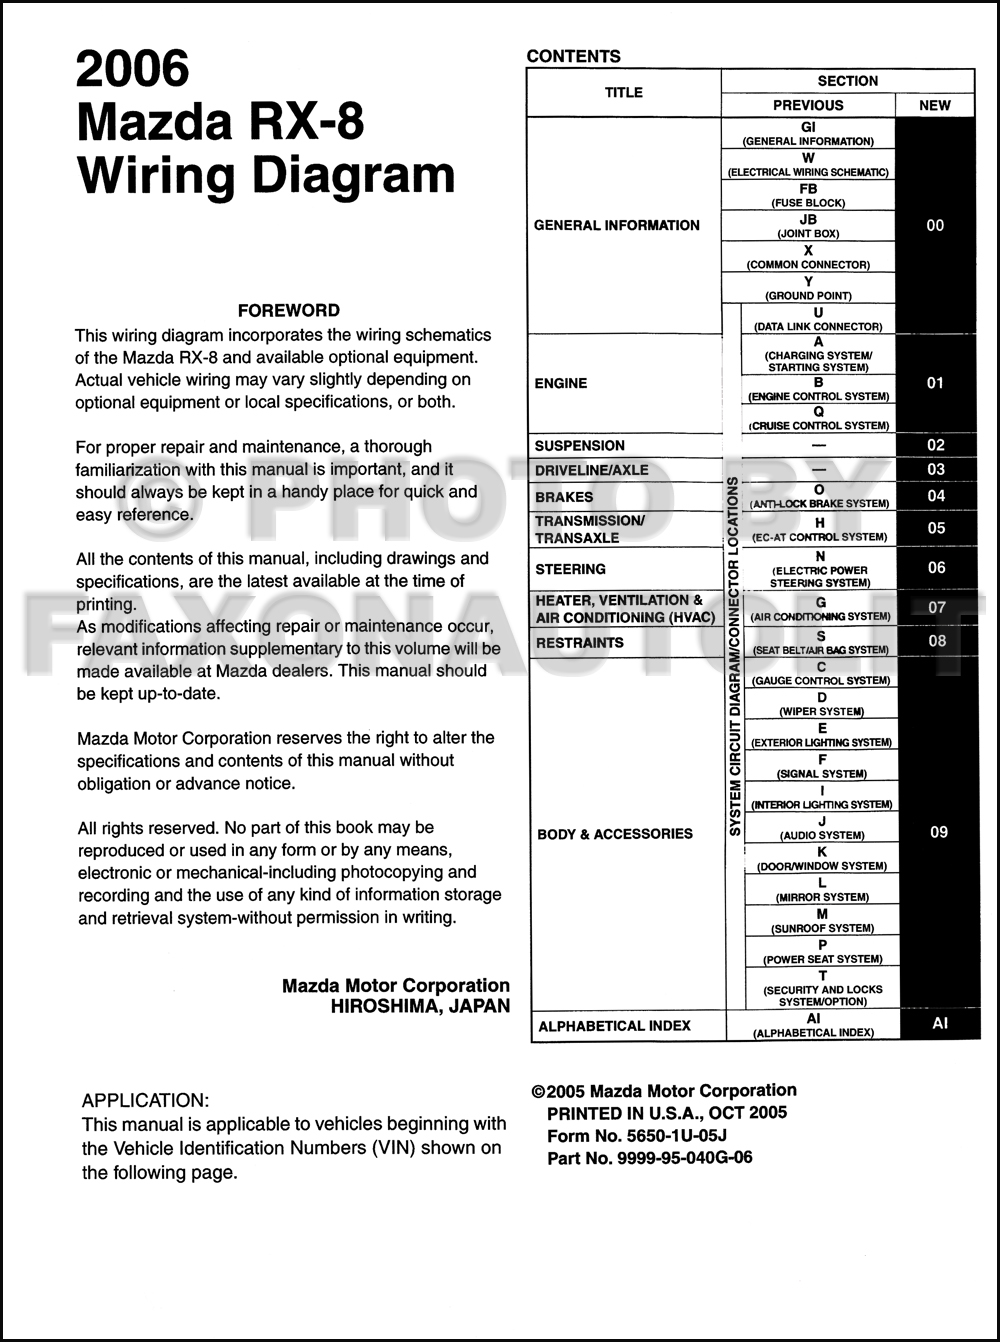 mazda wiring diagram color codes electric radiator cooling fan 2006 rx-8 manual original rx8